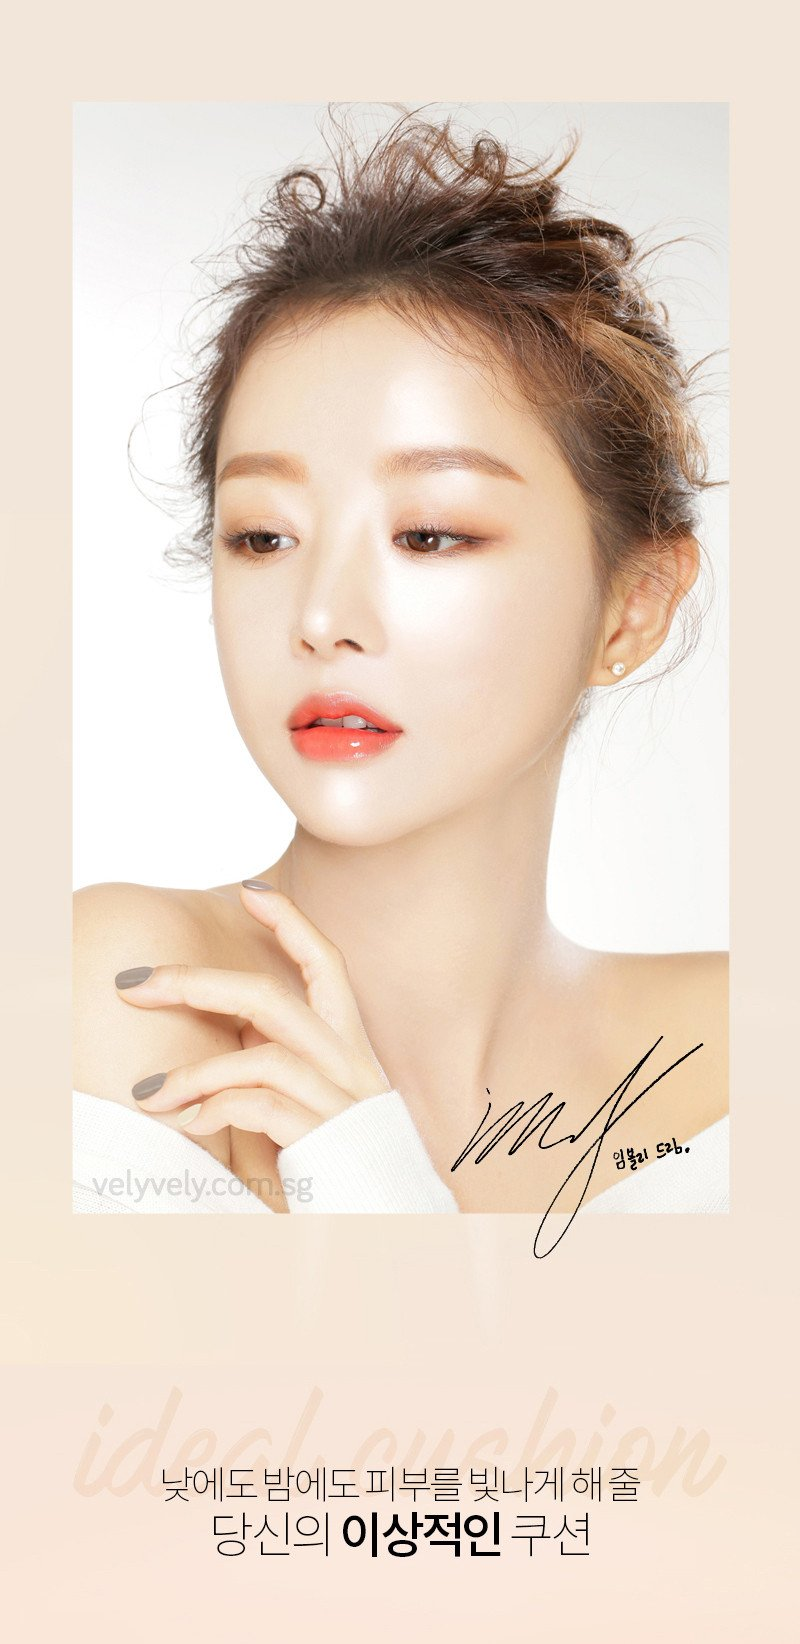 Im Jihyun using the Aura Glow Cushion. Look at that glowy and healthy skin finish!